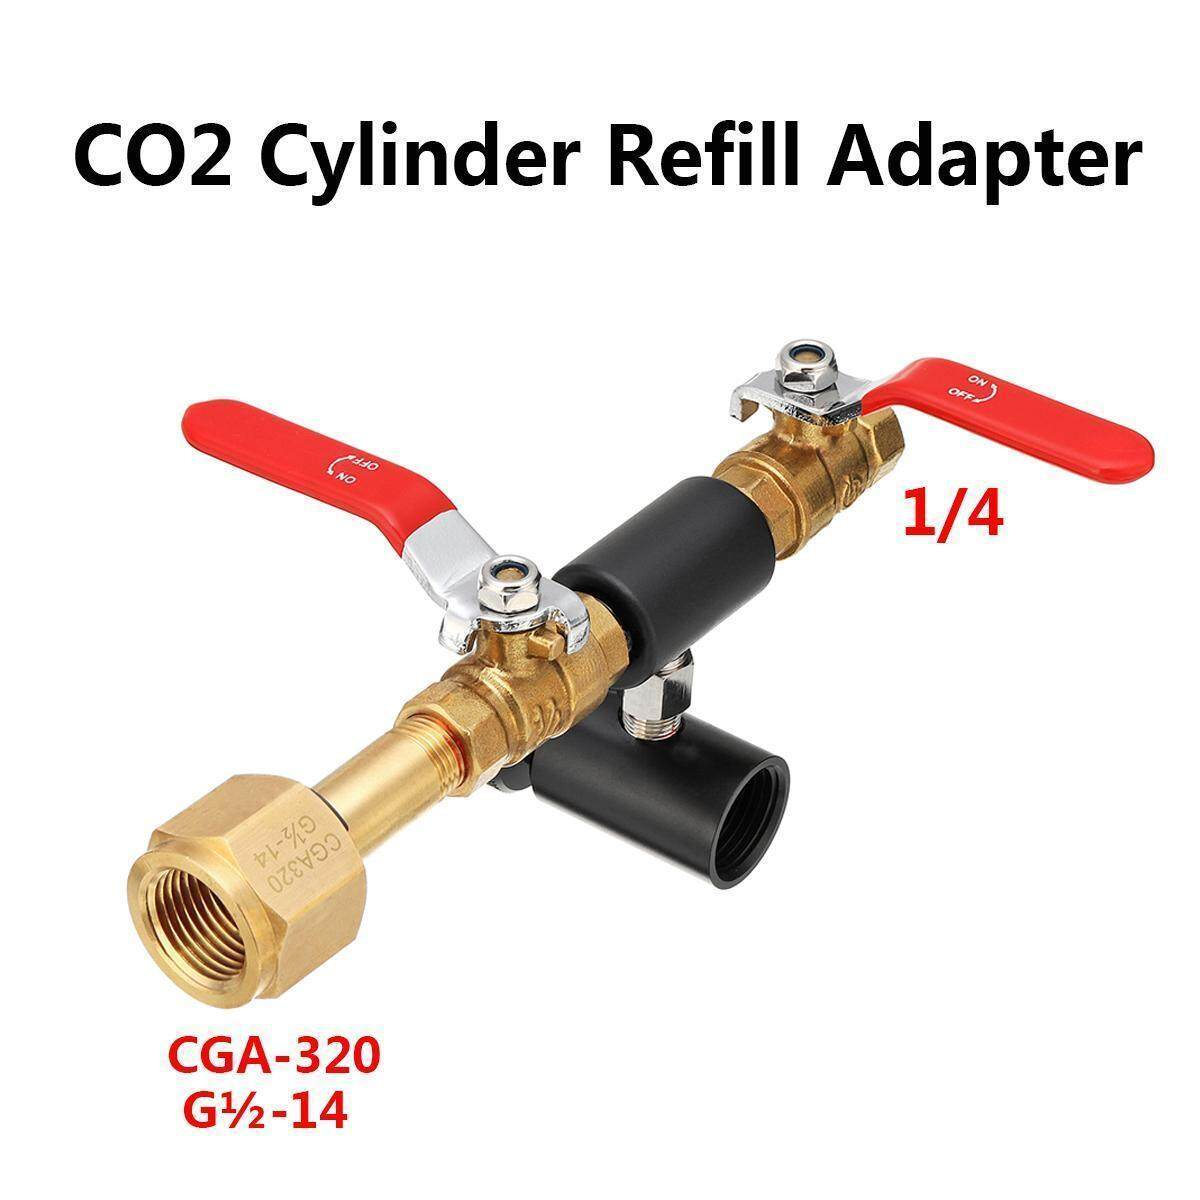 CO2 Cylinder Refill Adapter for SodaStream bottle Connector Homebrew Kit